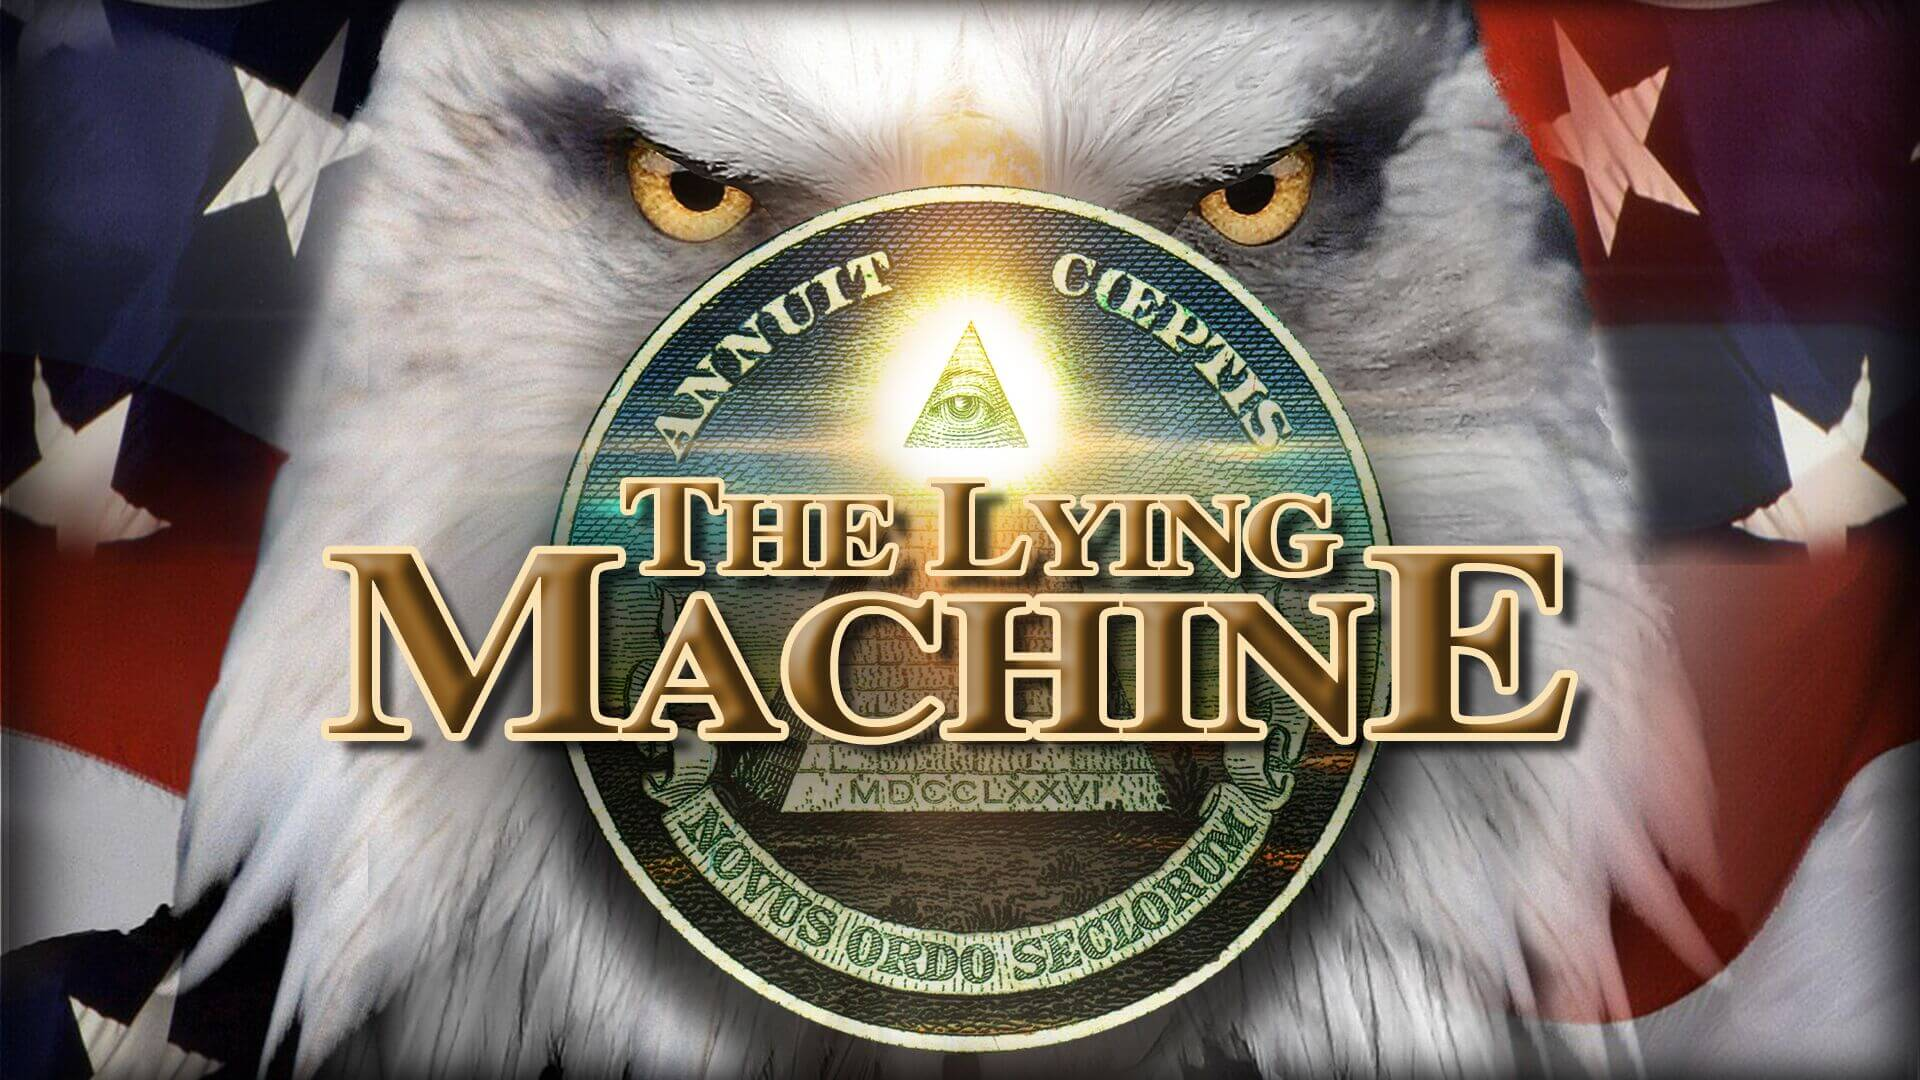 THE LYING MACHINE